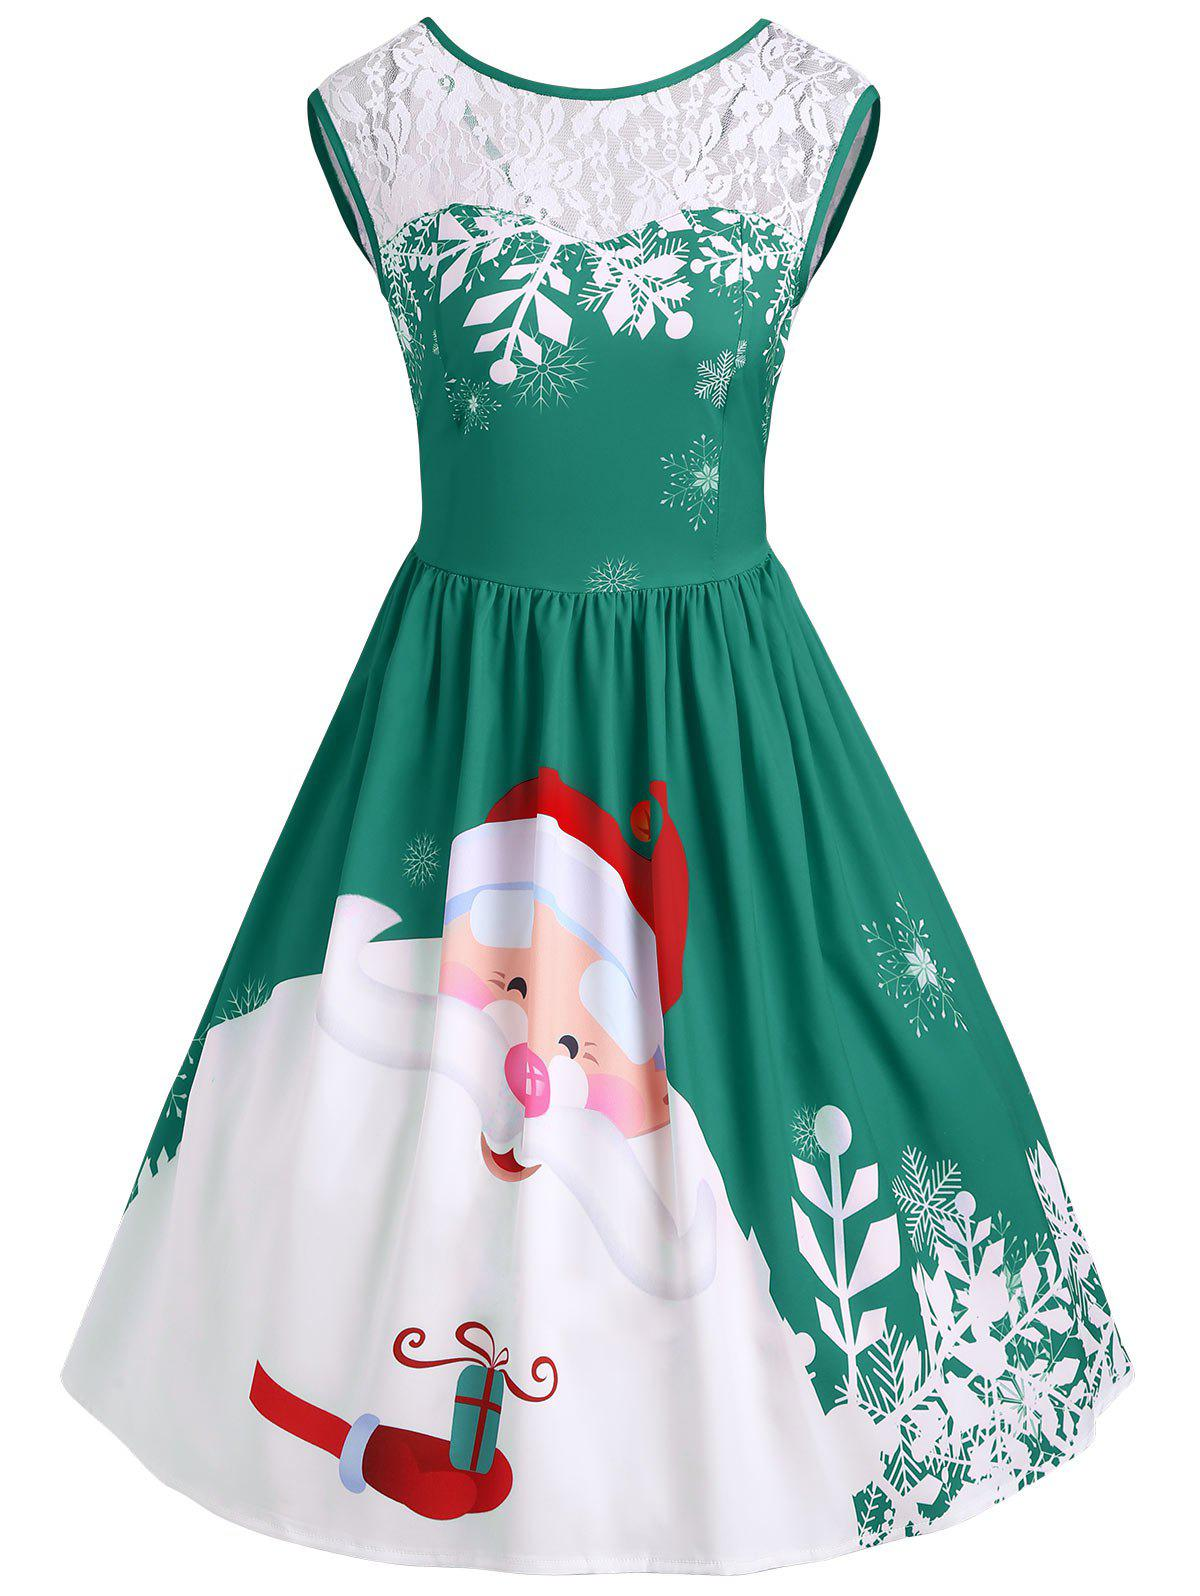 Christmas Santa Claus Print Lace Insert Party DressWOMEN<br><br>Size: M; Color: GREEN; Style: Vintage; Material: Polyester,Spandex; Silhouette: A-Line; Dresses Length: Knee-Length; Neckline: Round Collar; Sleeve Length: Sleeveless; Pattern Type: Patchwork,Print; With Belt: No; Season: Fall,Spring; Weight: 0.3500kg; Package Contents: 1 x Dress;